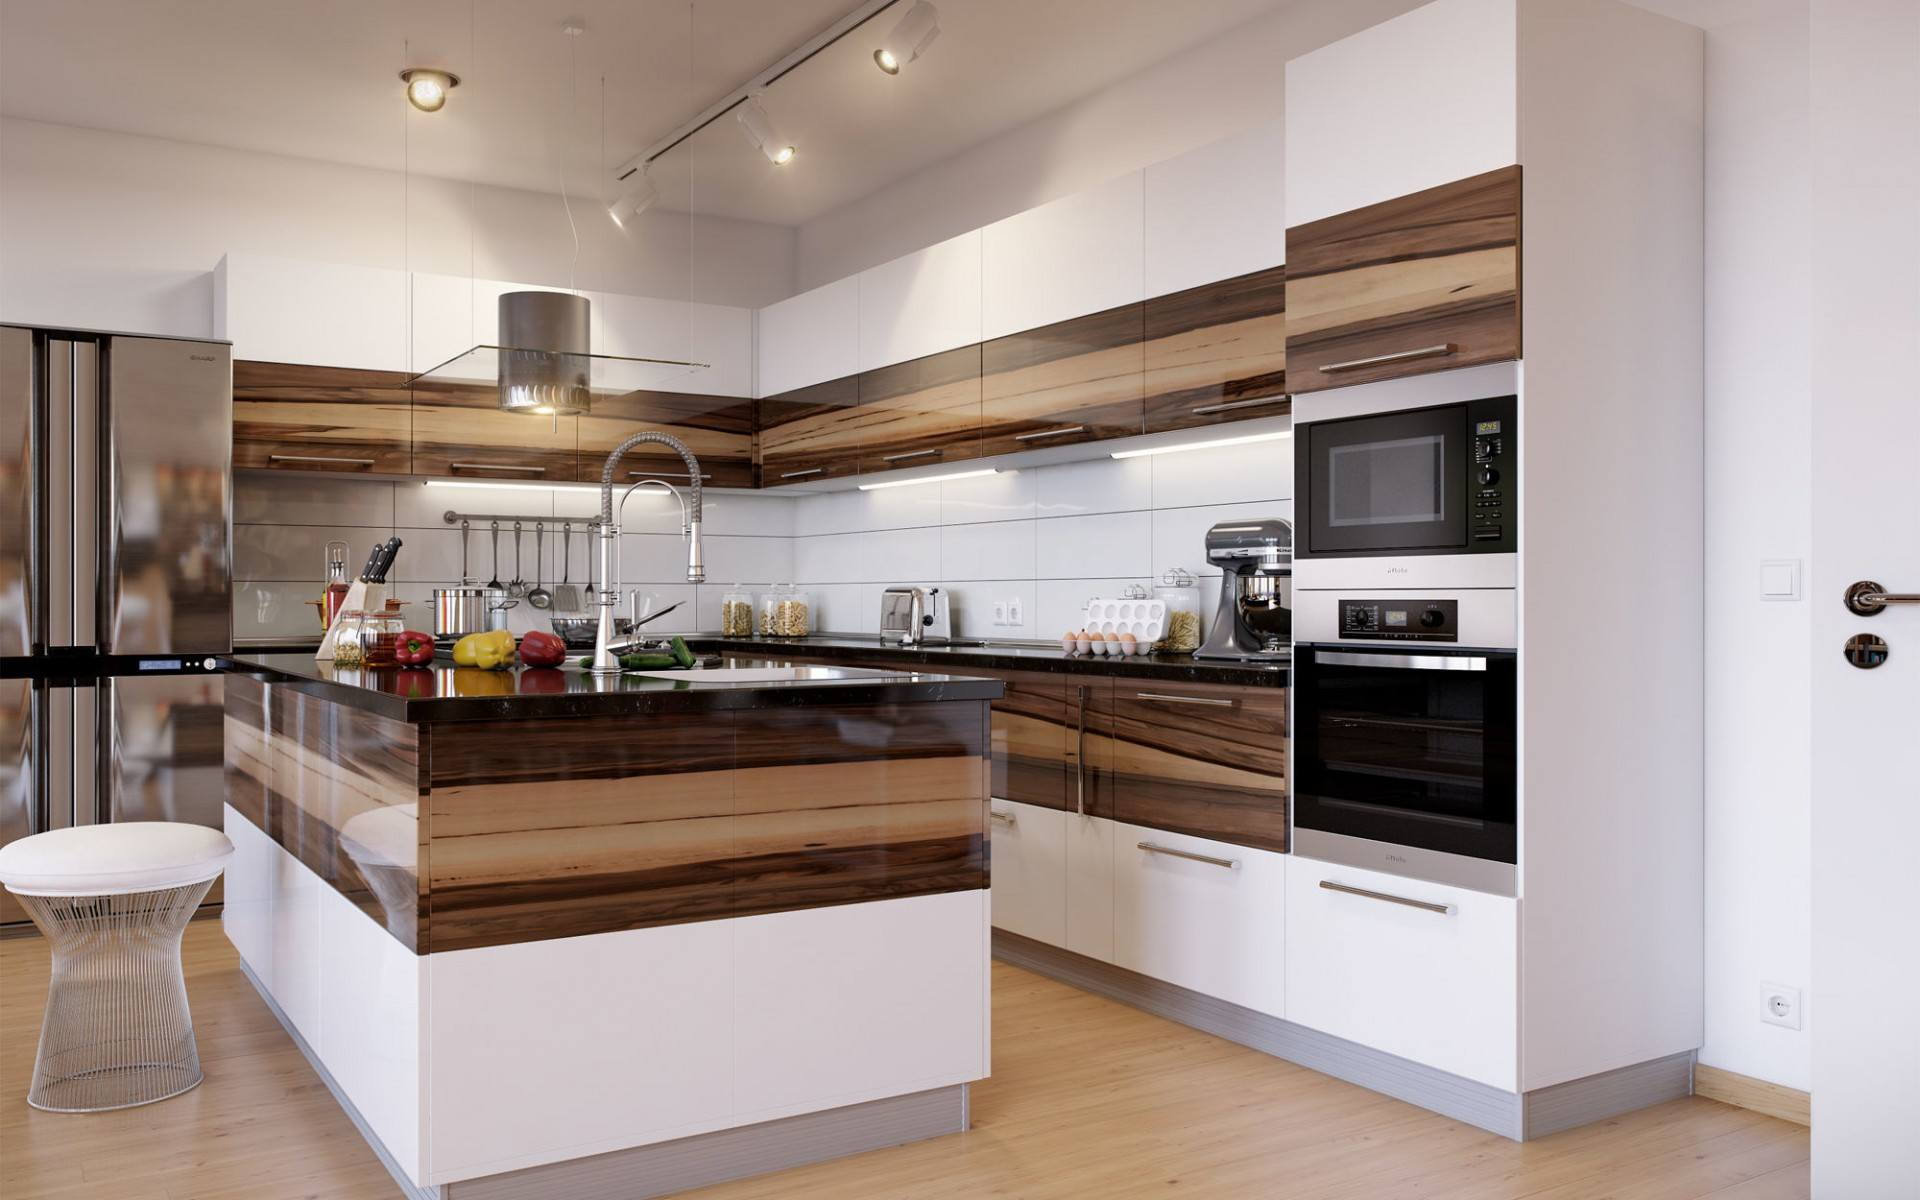 Modern Style Kitchen Design Ideas and Arrangement Advice with Photos. Nice decoration theme with brown horizontal stripes